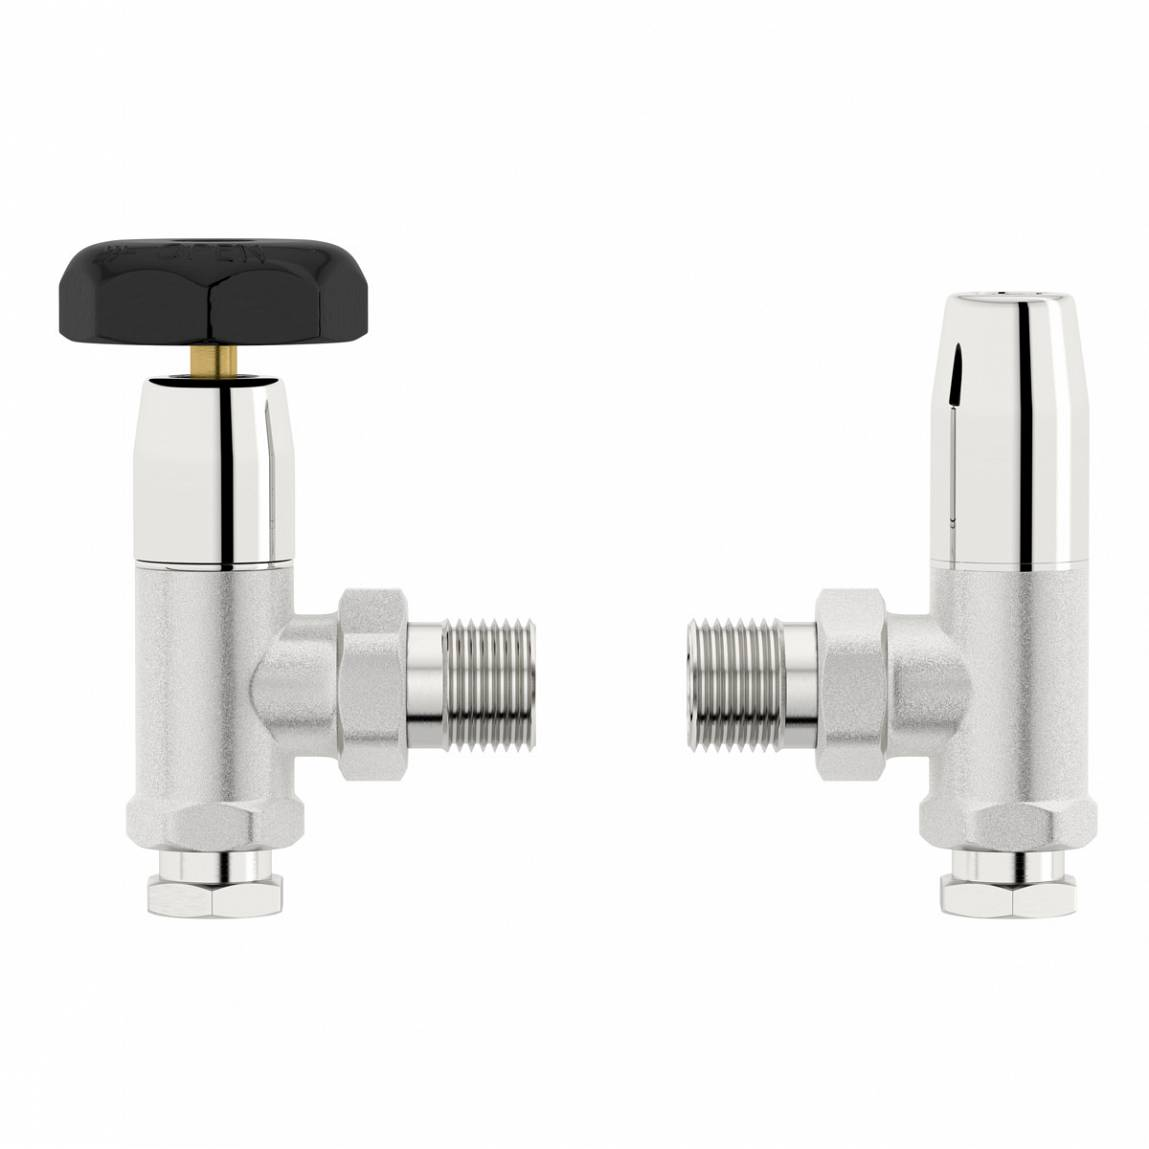 Image of Traditional Angled Radiator Valves with Black Handle